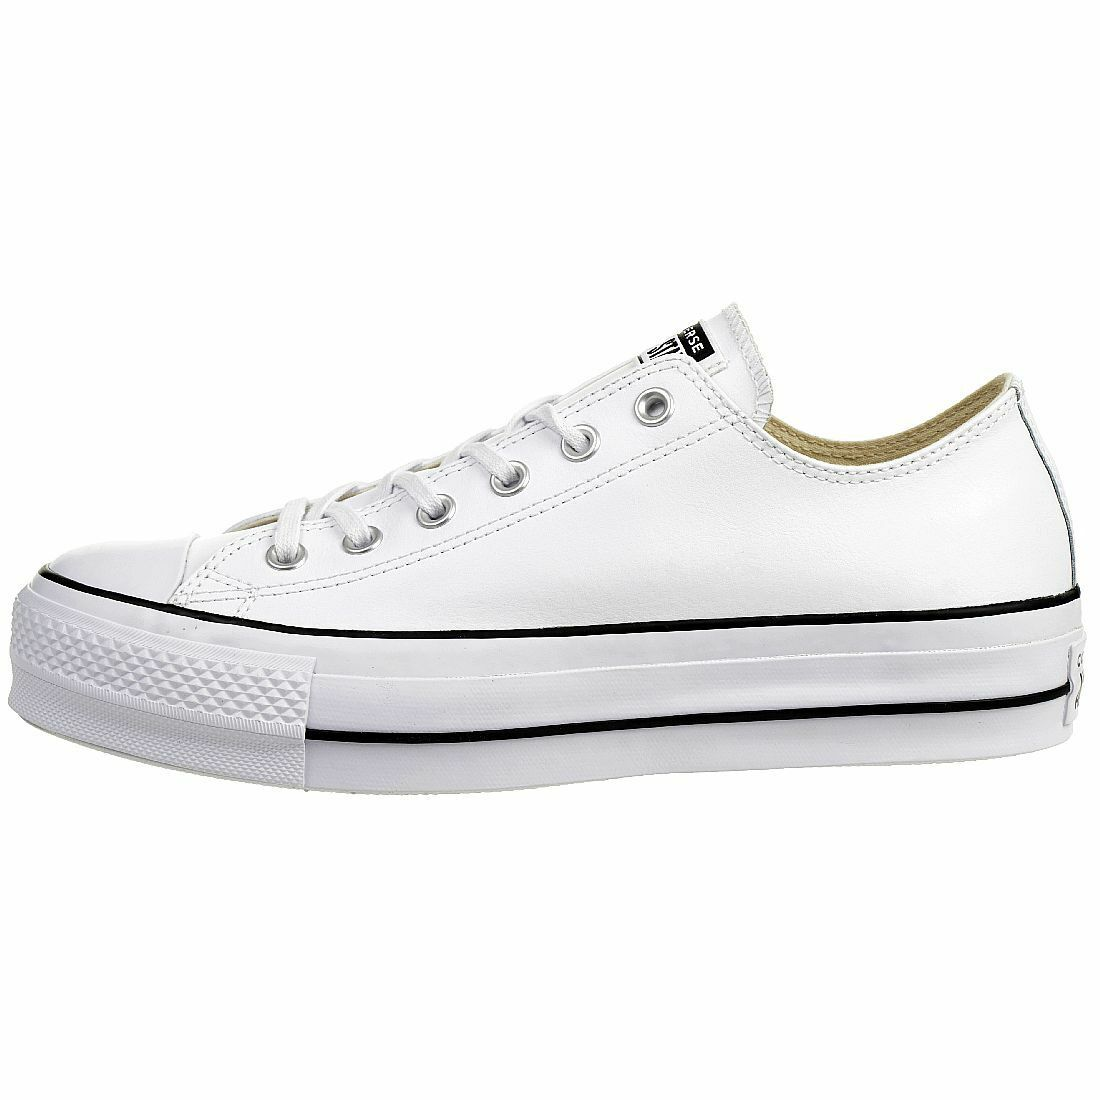 Converse C Taylor All Star LIFT CLEAN OX Chuck Turnschuhe Turnschuhe Turnschuhe Leder plateau 561680C 113988